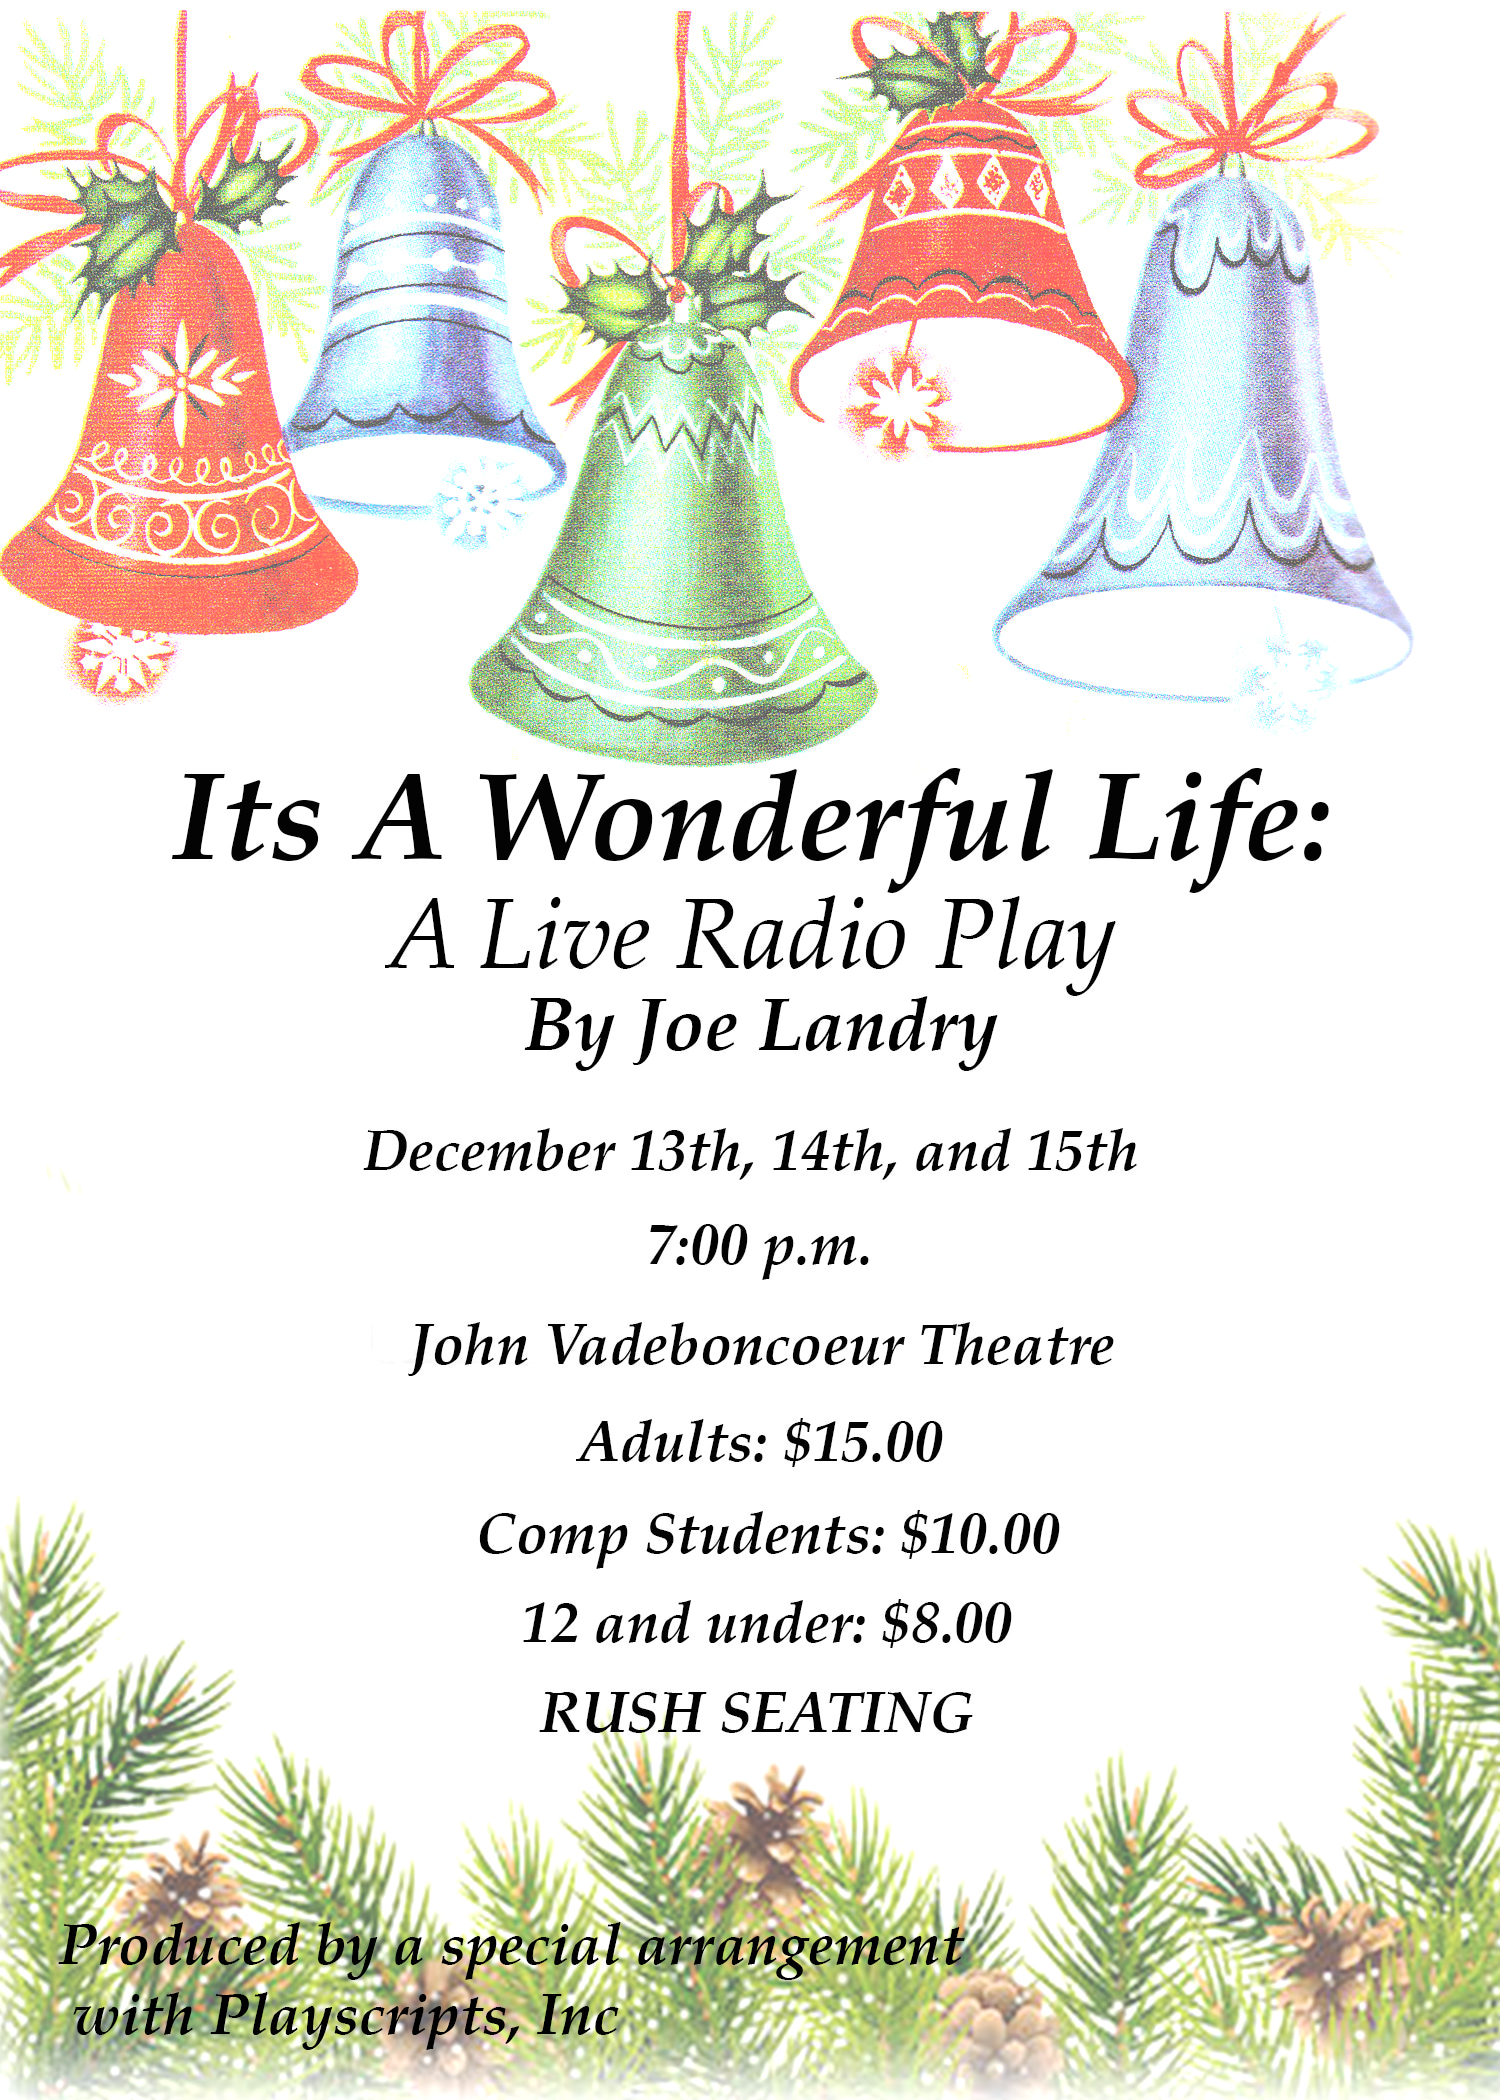 LSRCSS It's A Wonderful Life - Live Radio Play 2017